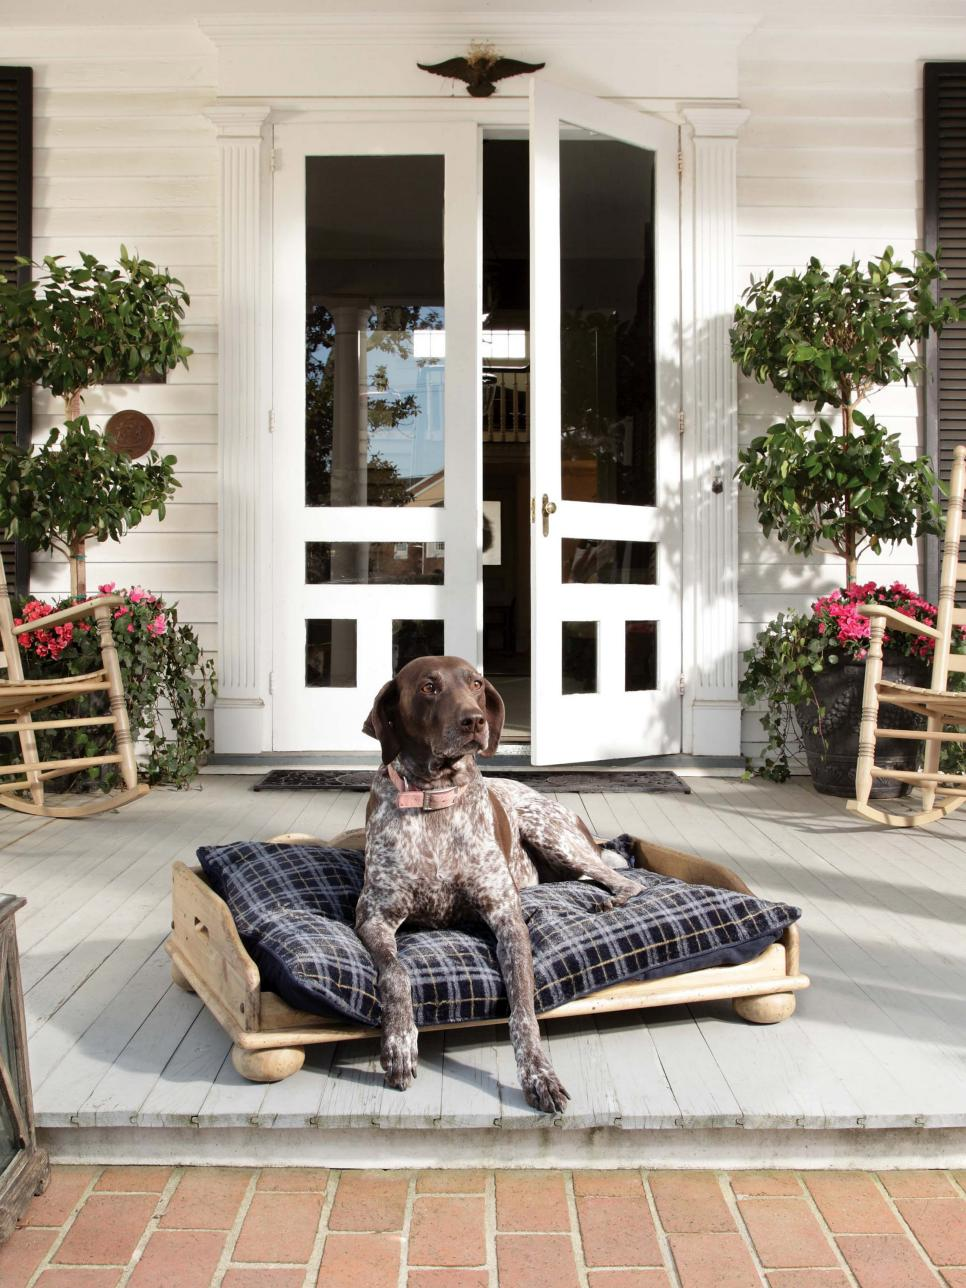 Image of: Dog On Front Porch Decorating